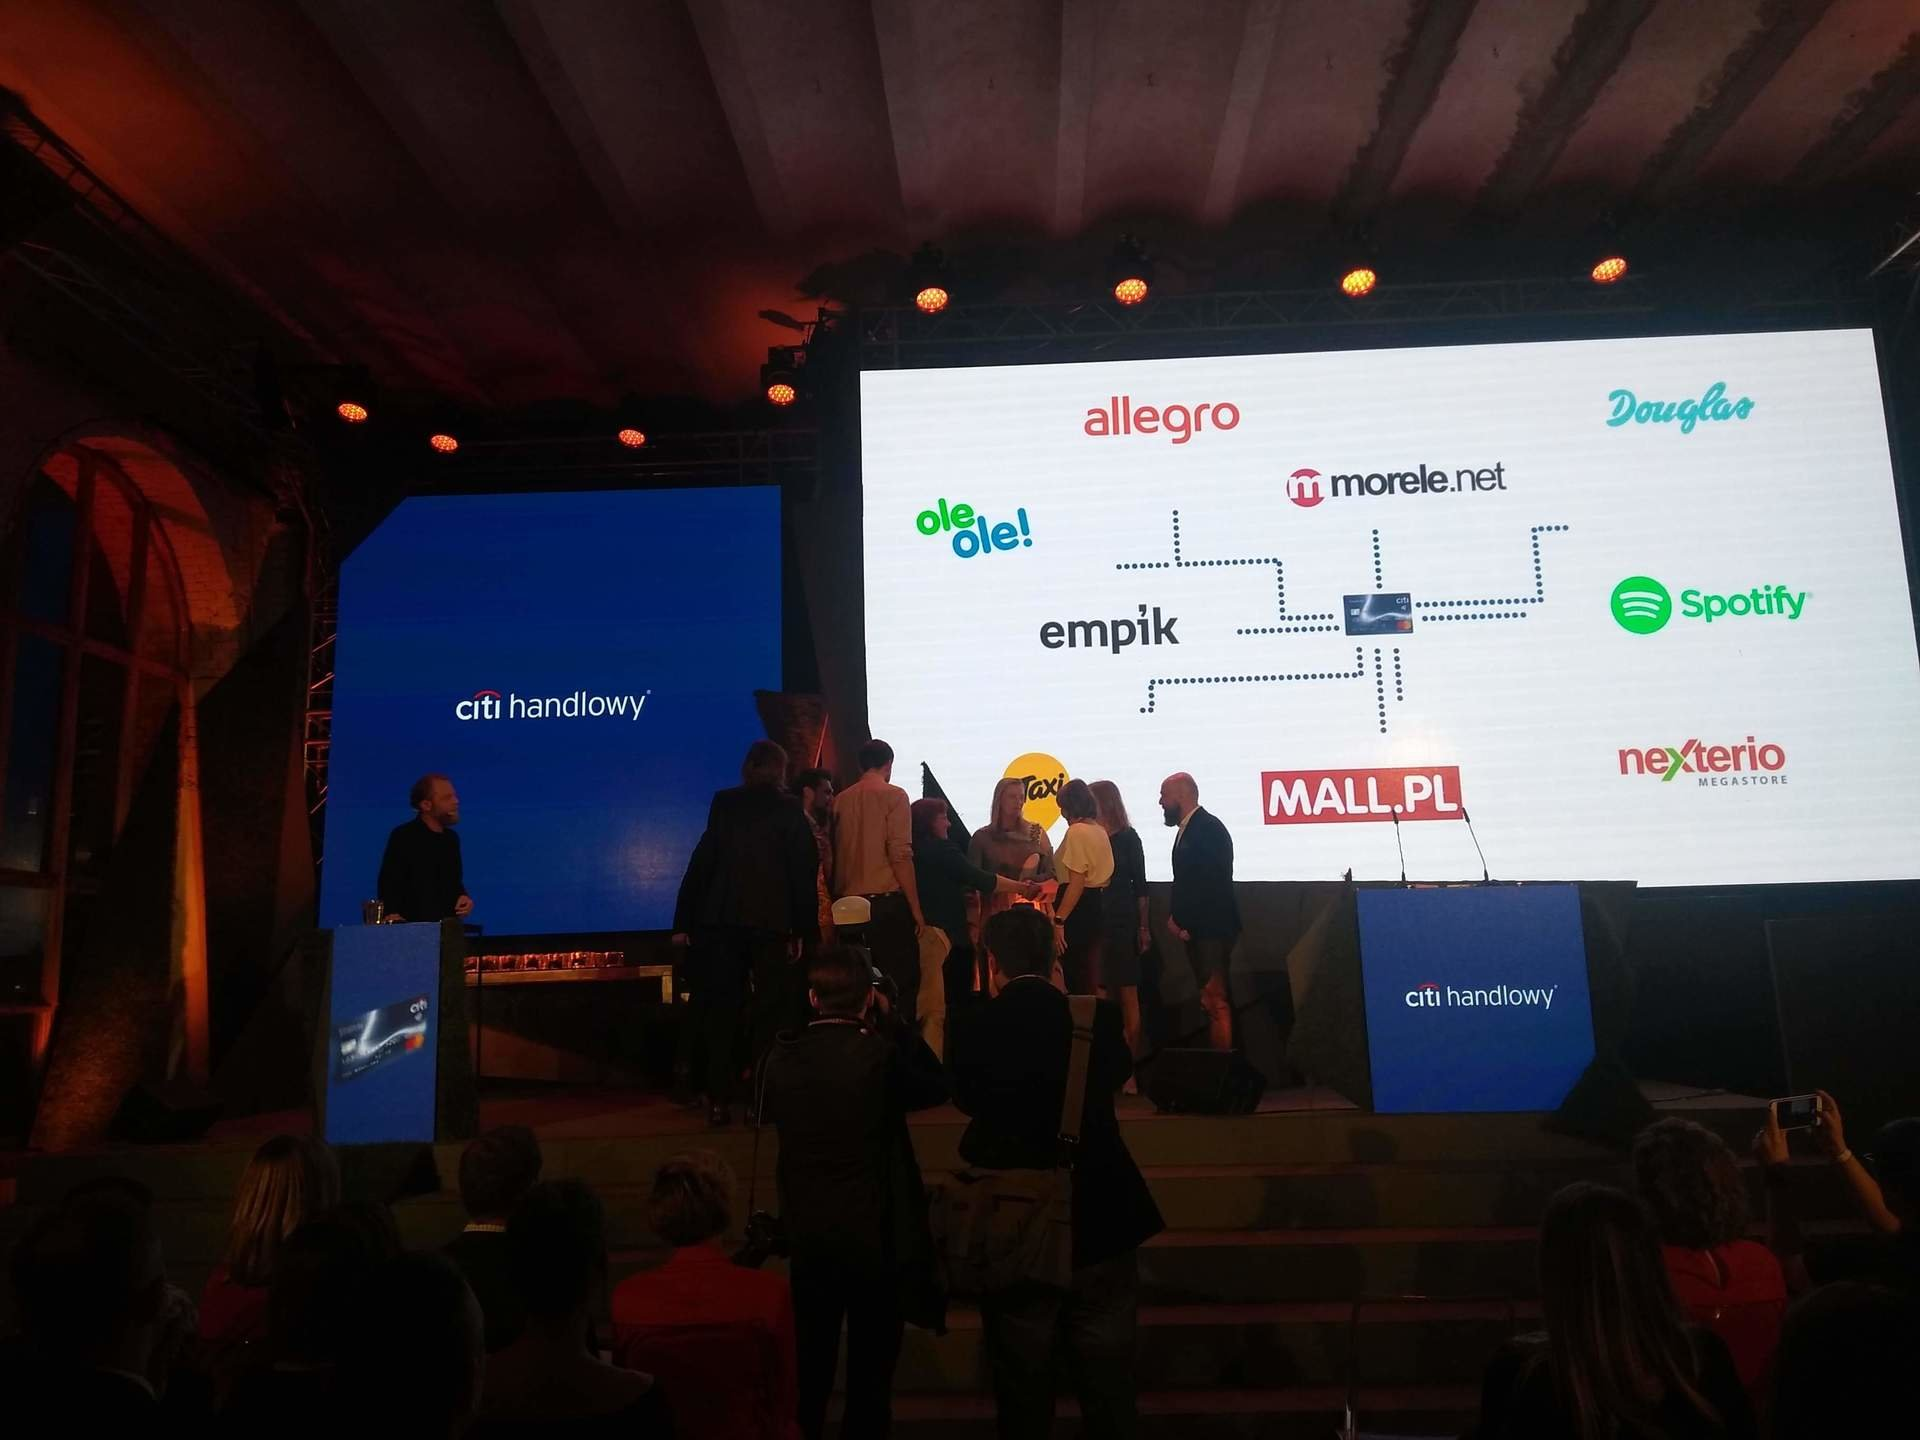 Citi Handlowy awarded  for the innovative acquisition strategy for the Credit Card